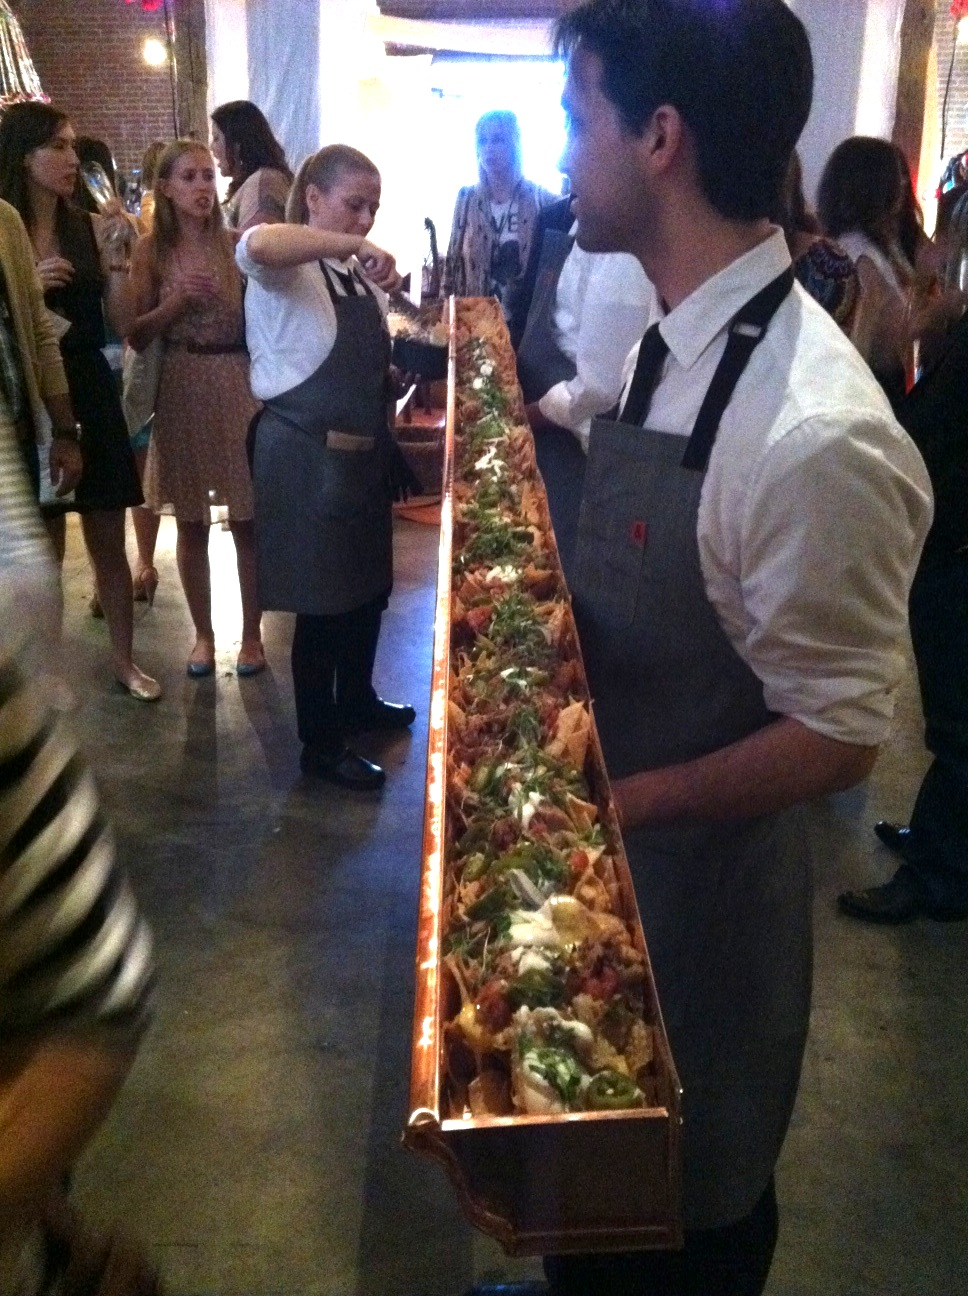 Such a unique way to serve nachos! Good job Room Forty!